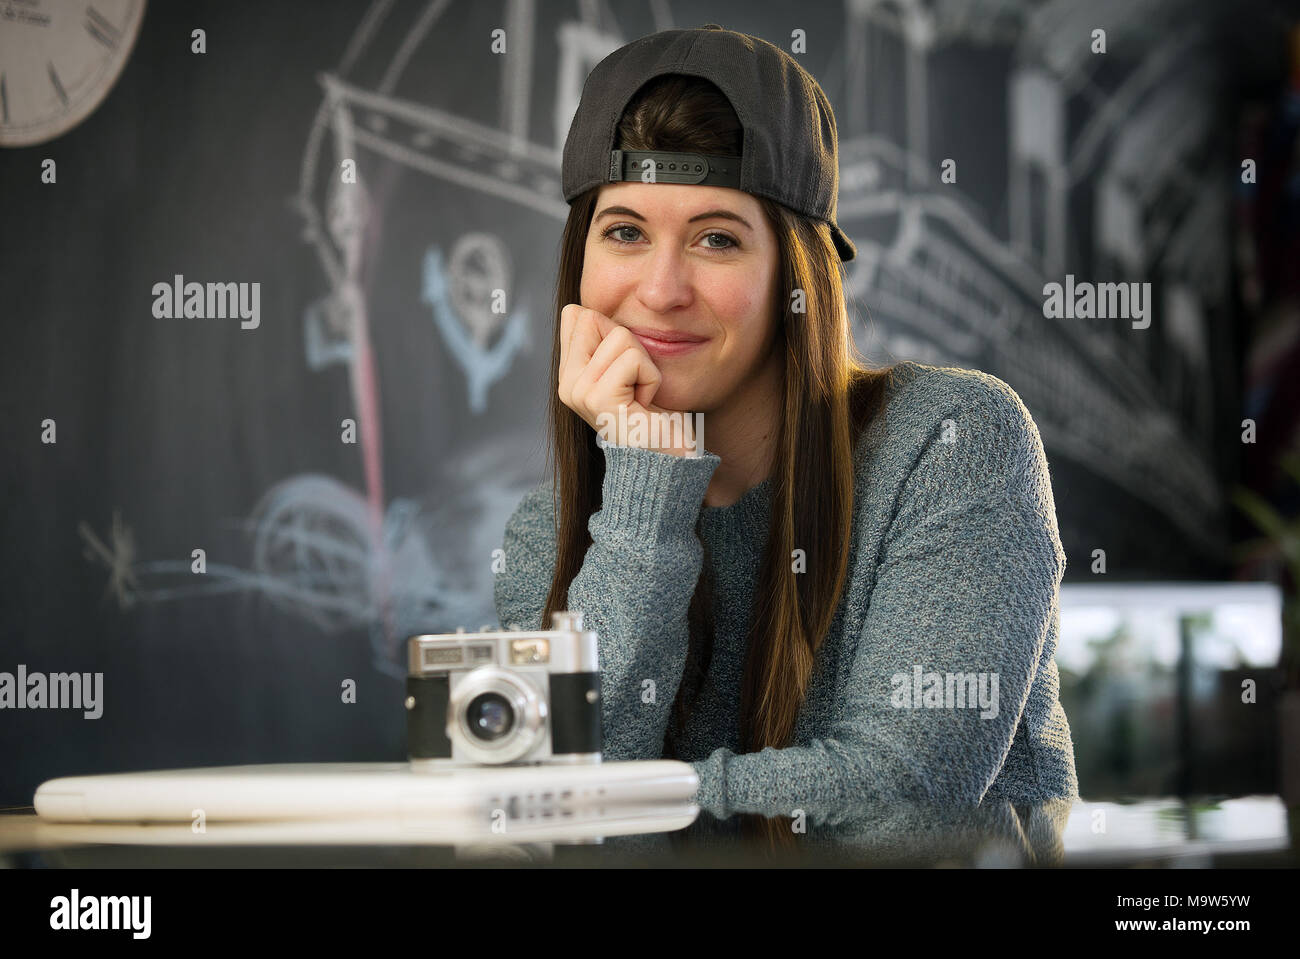 Repentigny,Canada,27,March,2018.Young woman smiling at camera in her kitchen.Credit Mario Beauregard/Alamy Live News - Stock Image